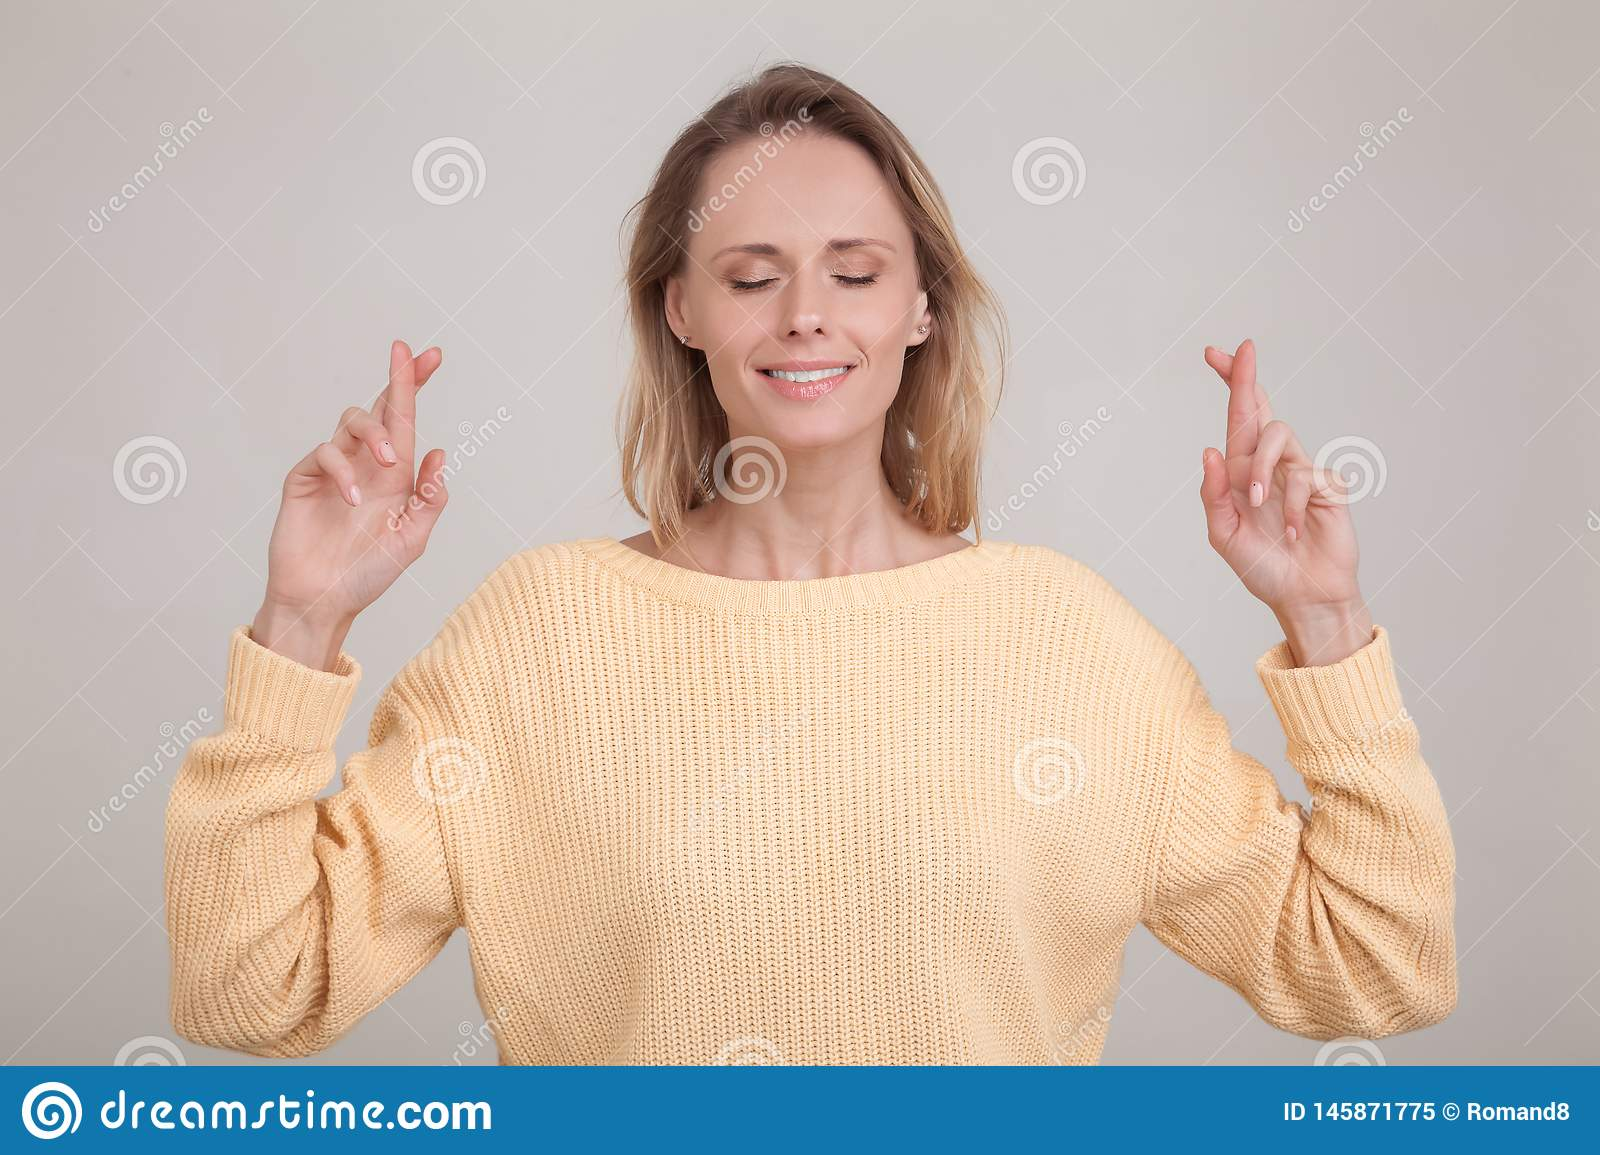 Young caucasian blonde female closing her eyes crossing fingers with hope, anticipating important news.wearing yellow sweater.